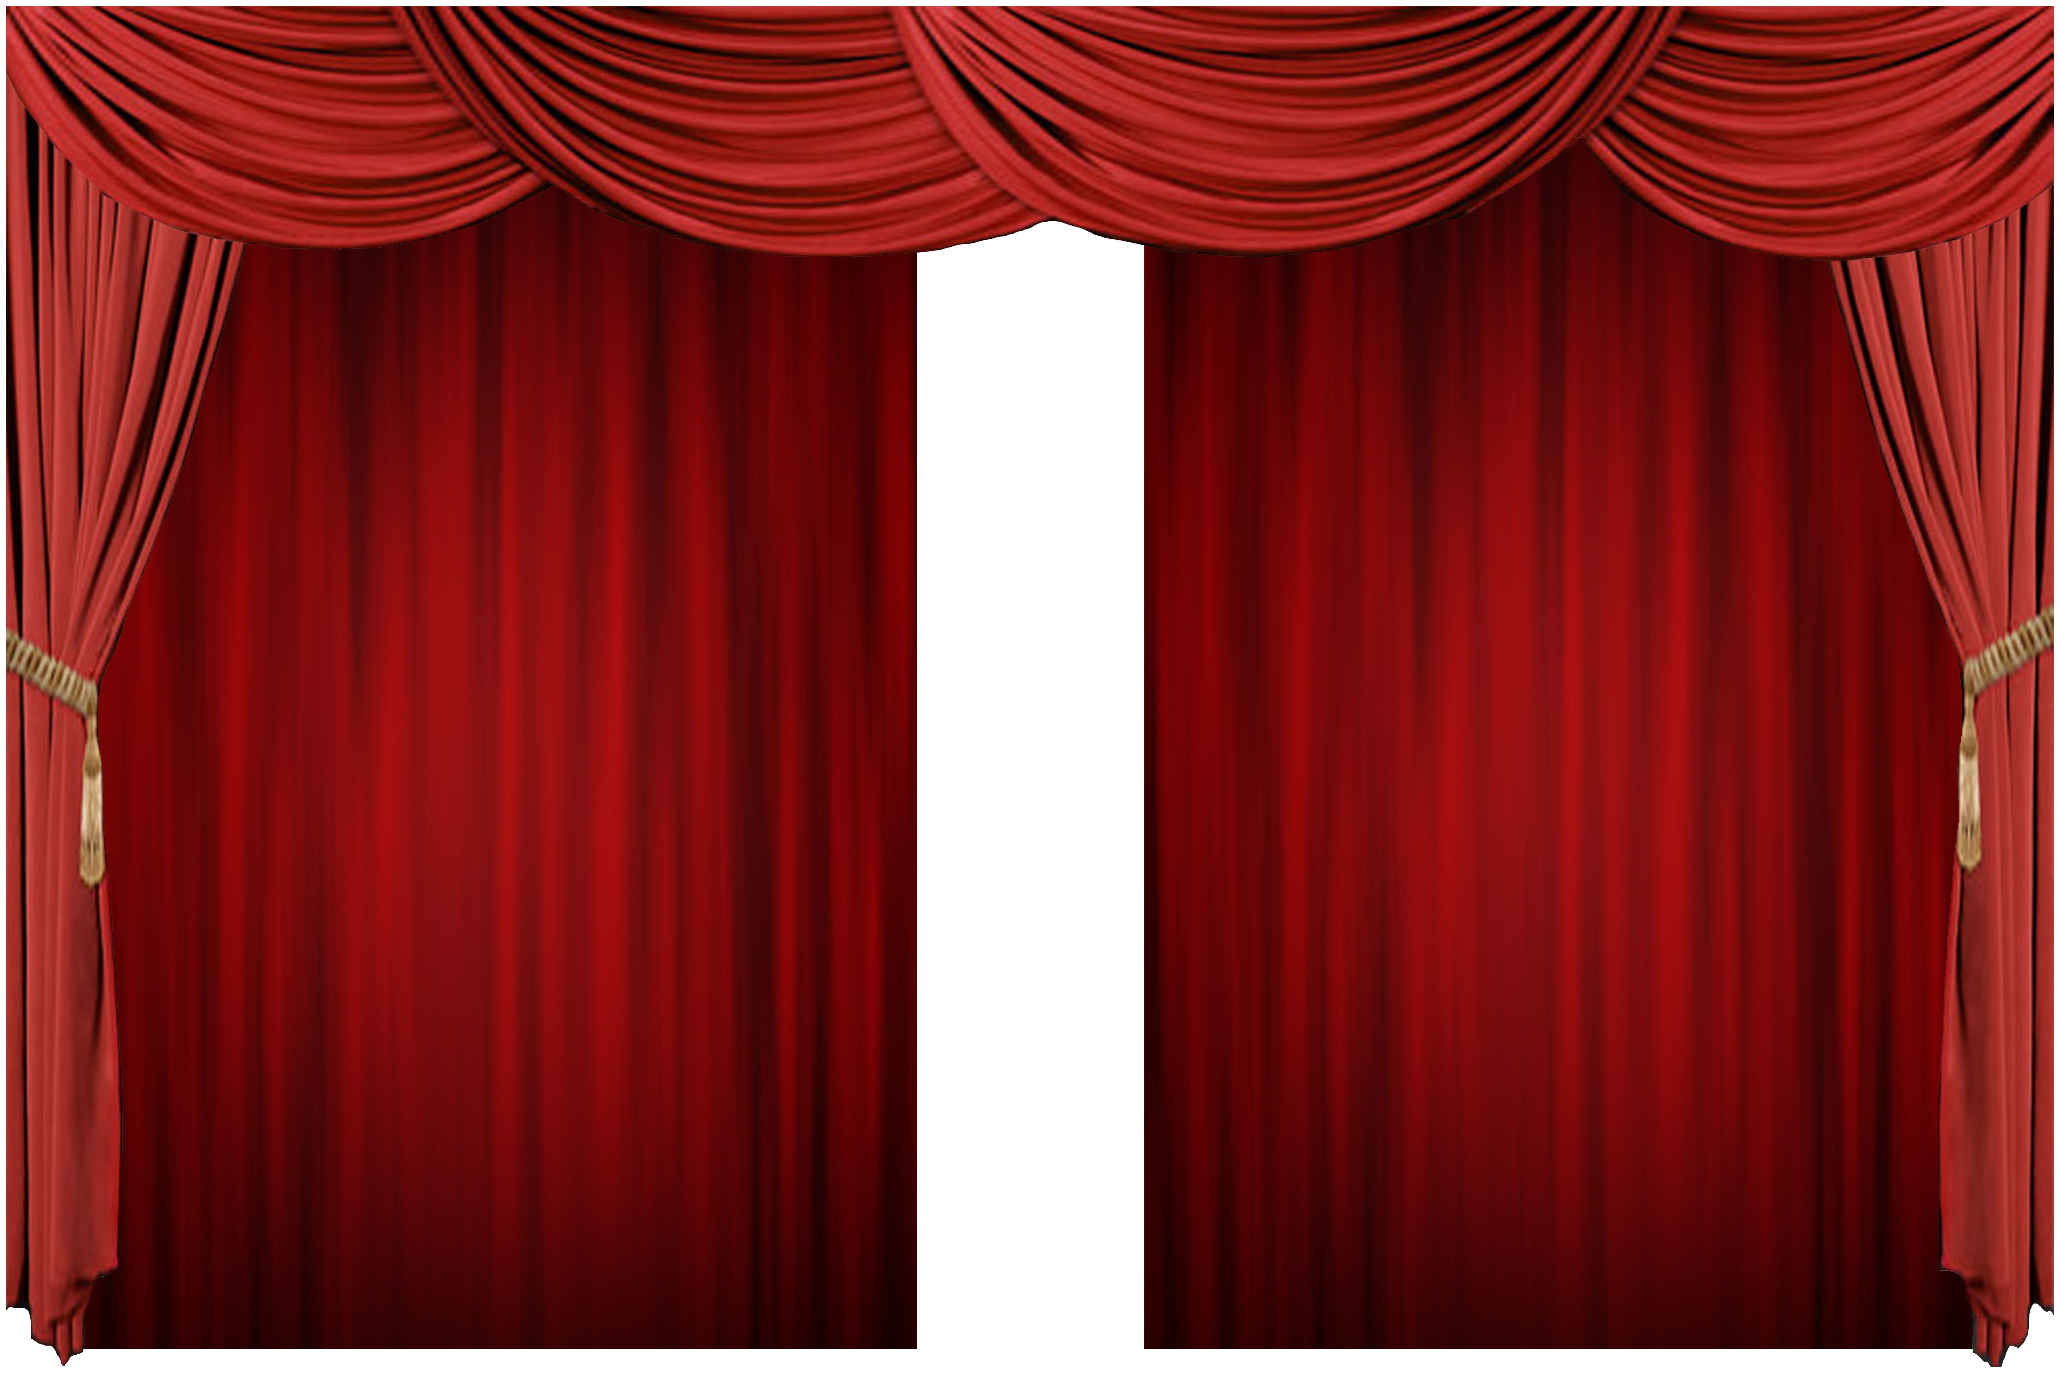 Http Www Bizearch Com Products Electric Stage Curtains 5383 25173 Htm